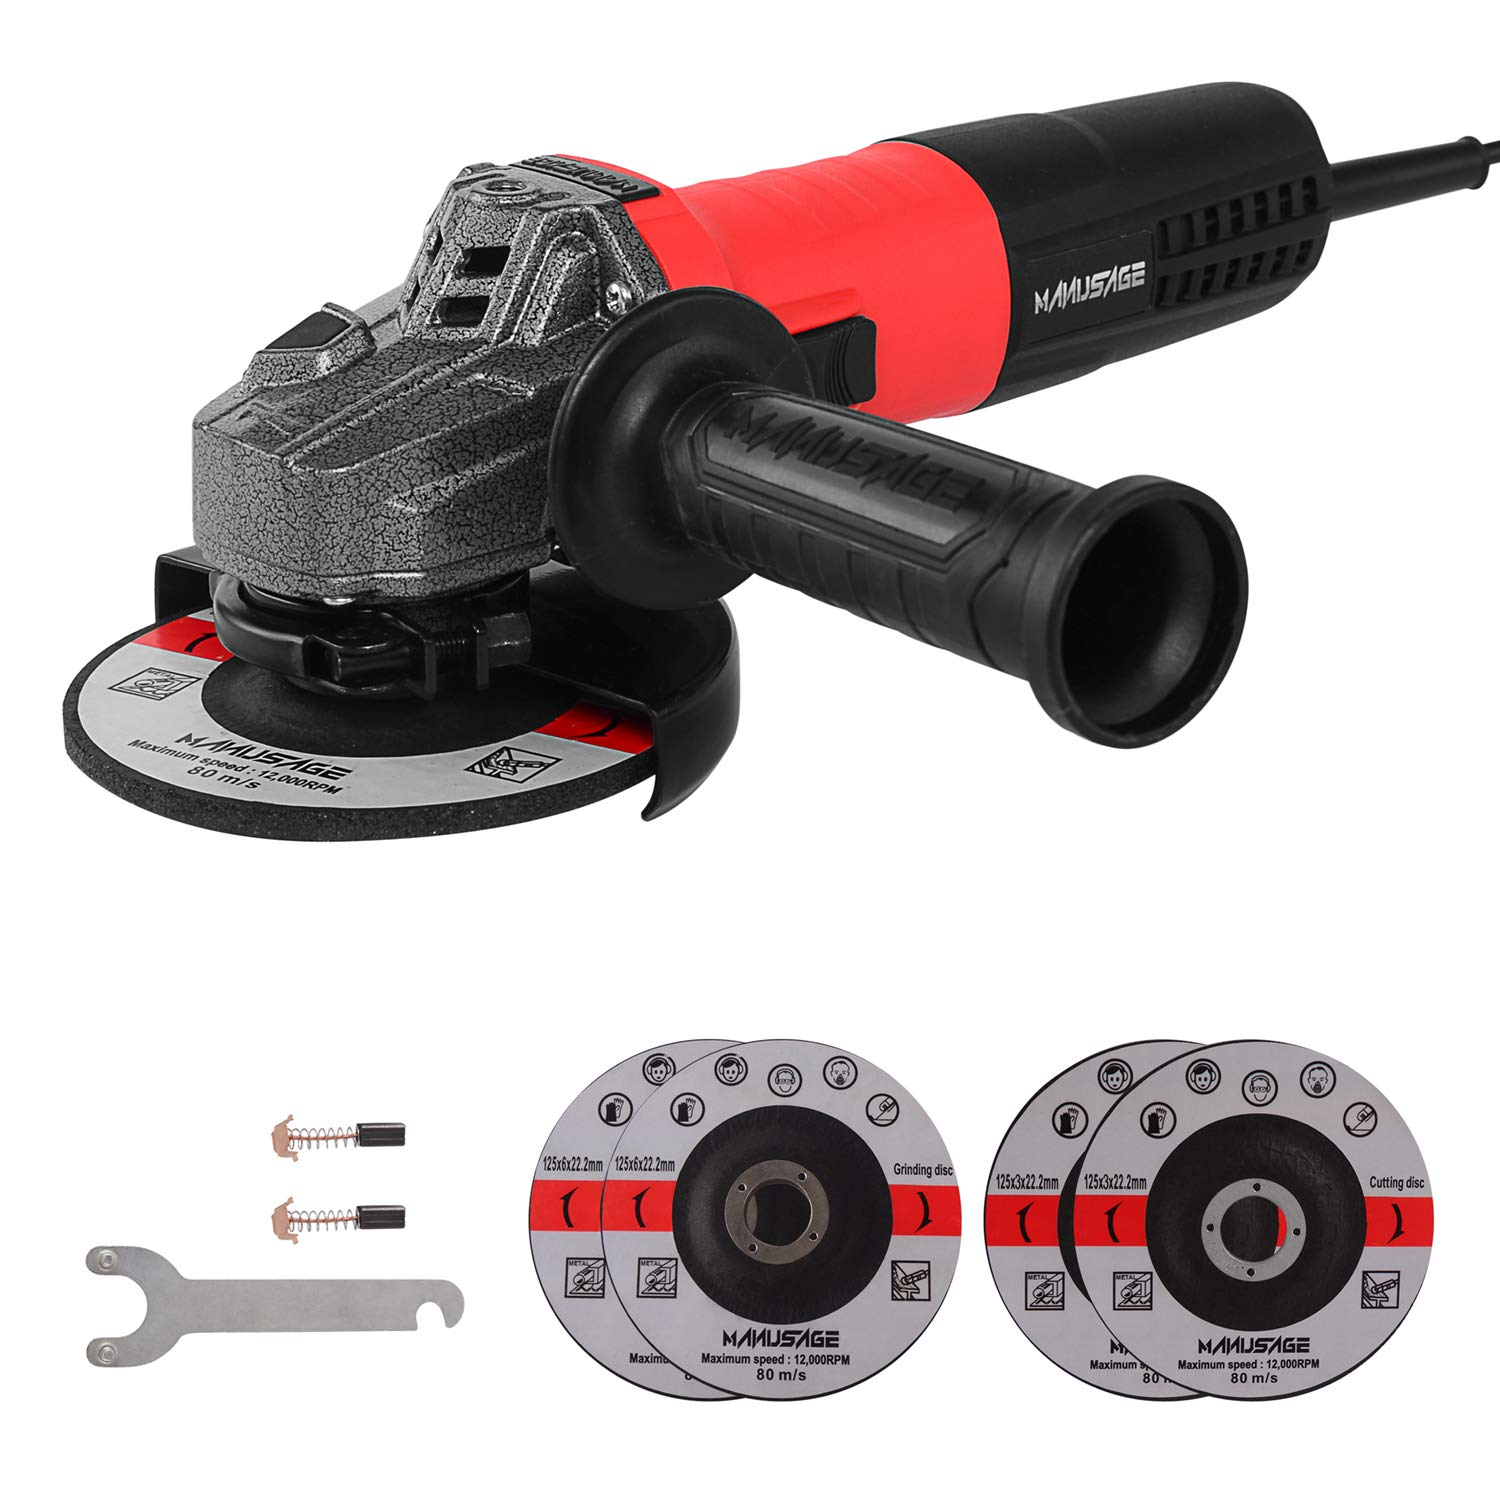 MANUSAGE 7-Amp Angle Grinder,5 inch Power Grinder with 125mm Grinding Abrasive Wheels,Cutting Abrasive Wheels and 3-Position Anti-Vibration Handle